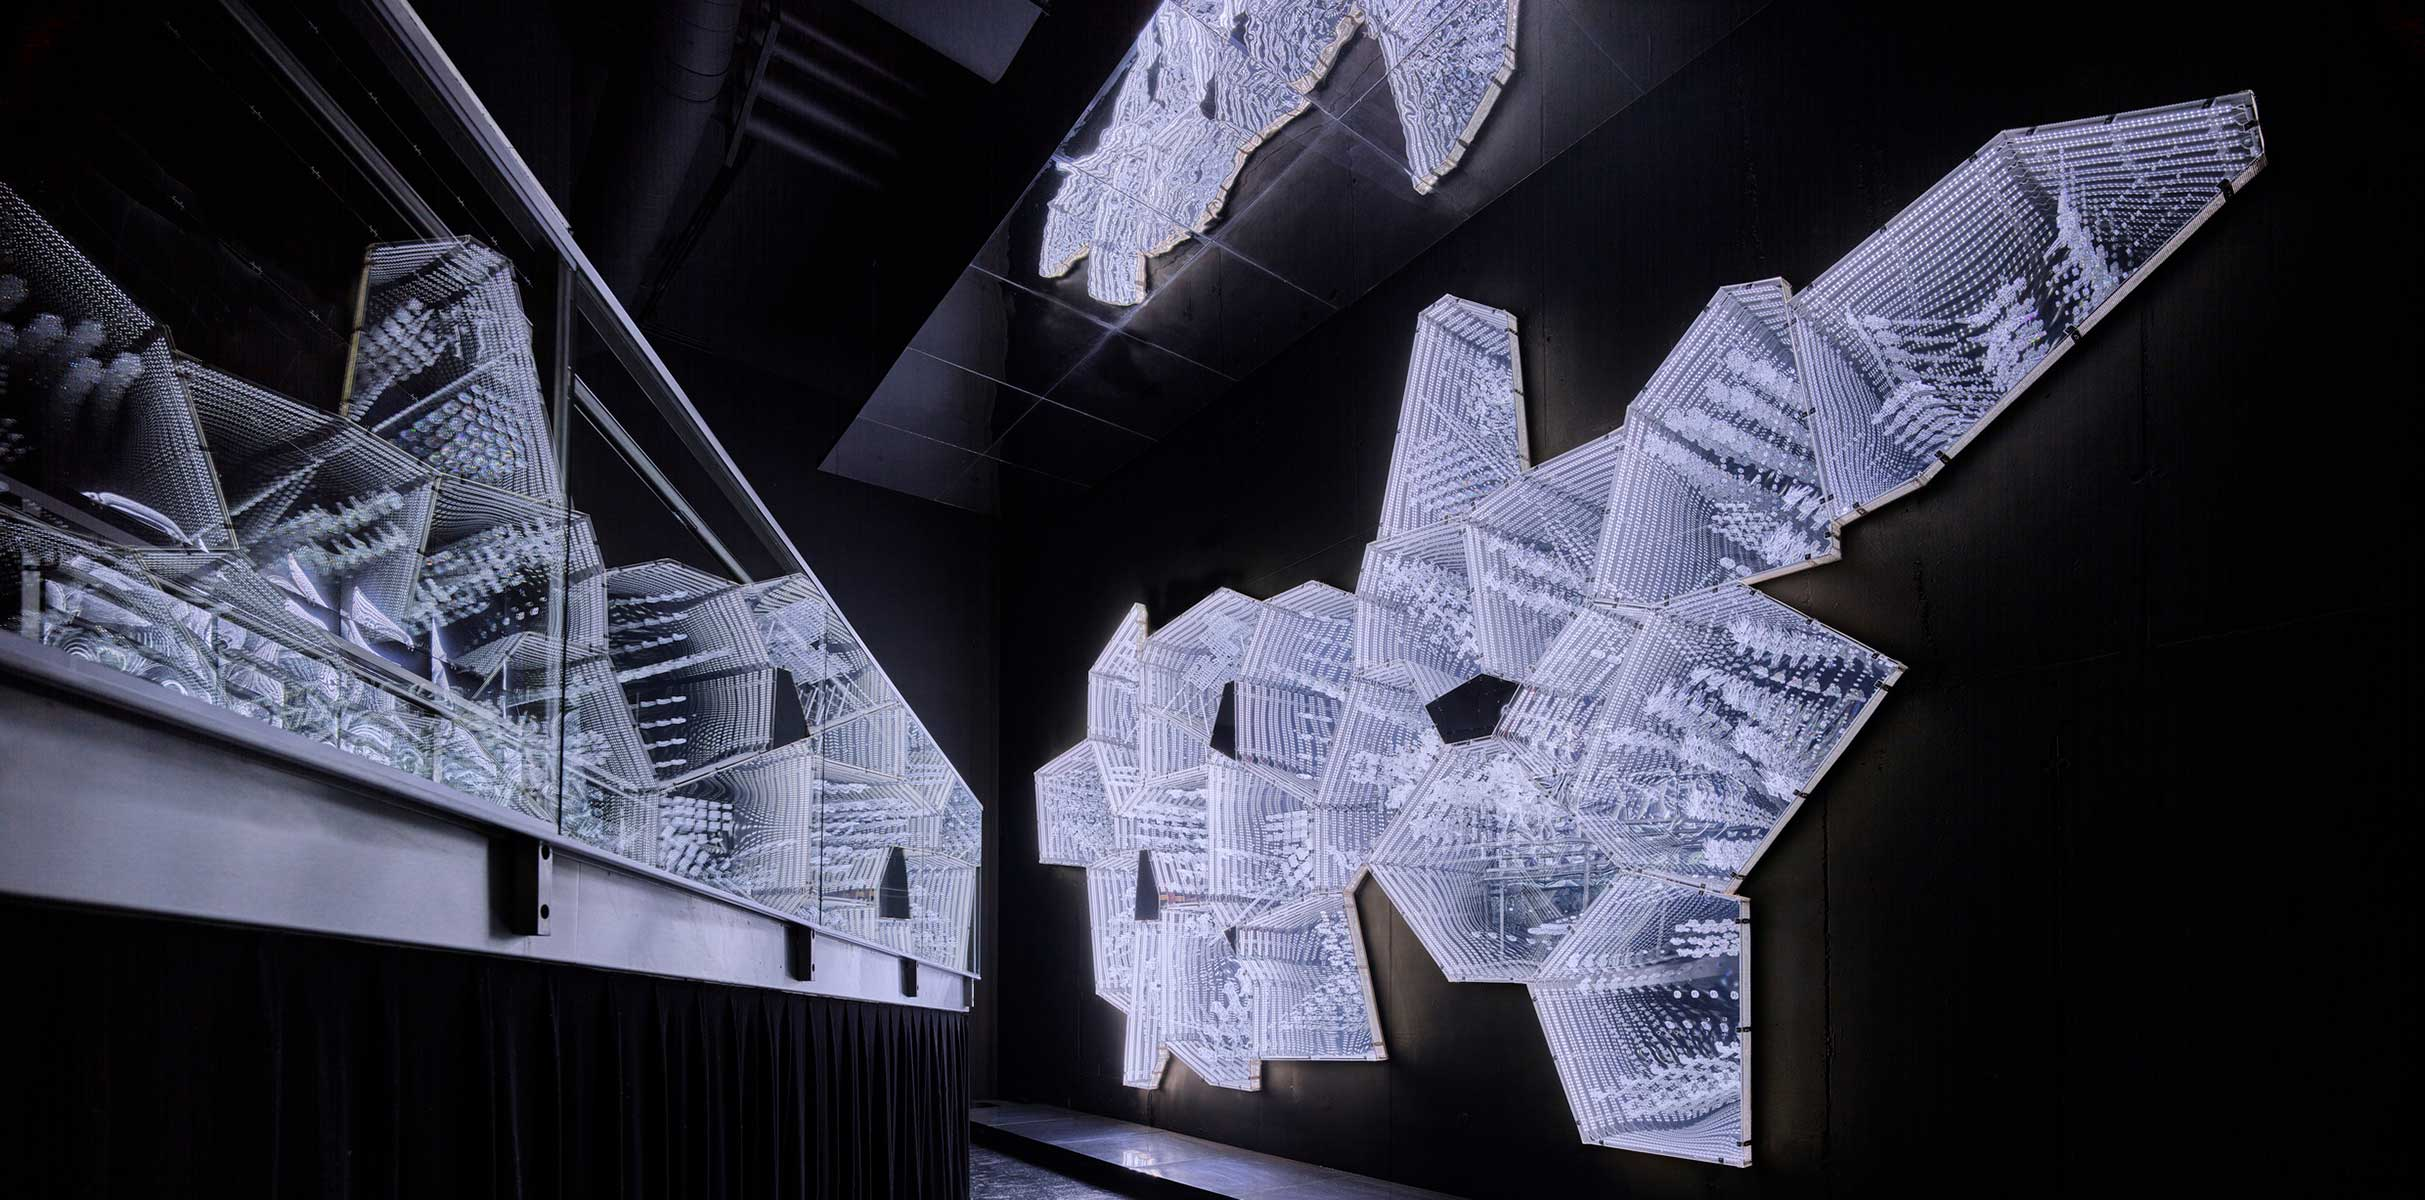 Lee Bul Exhibition